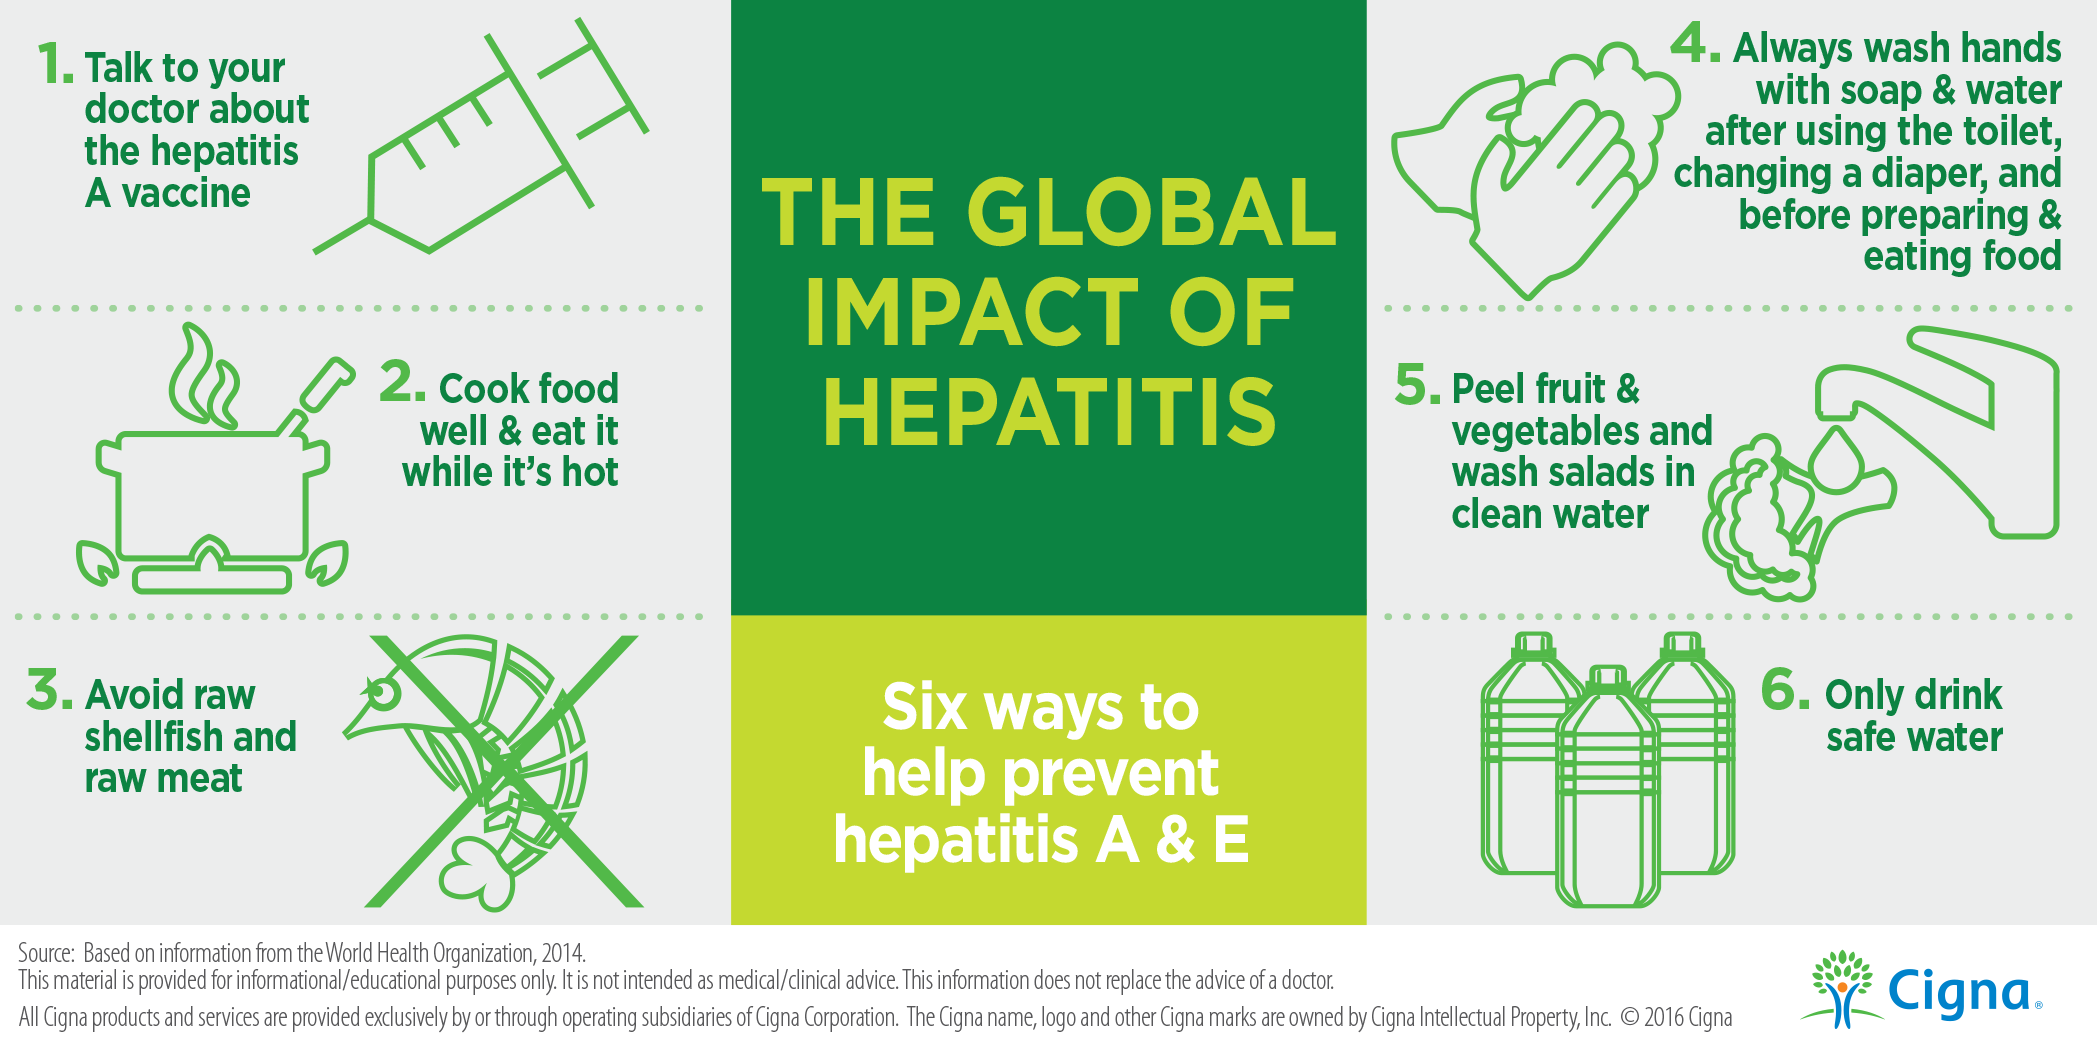 Six Ways to Help Prevent Hepatitis A & E